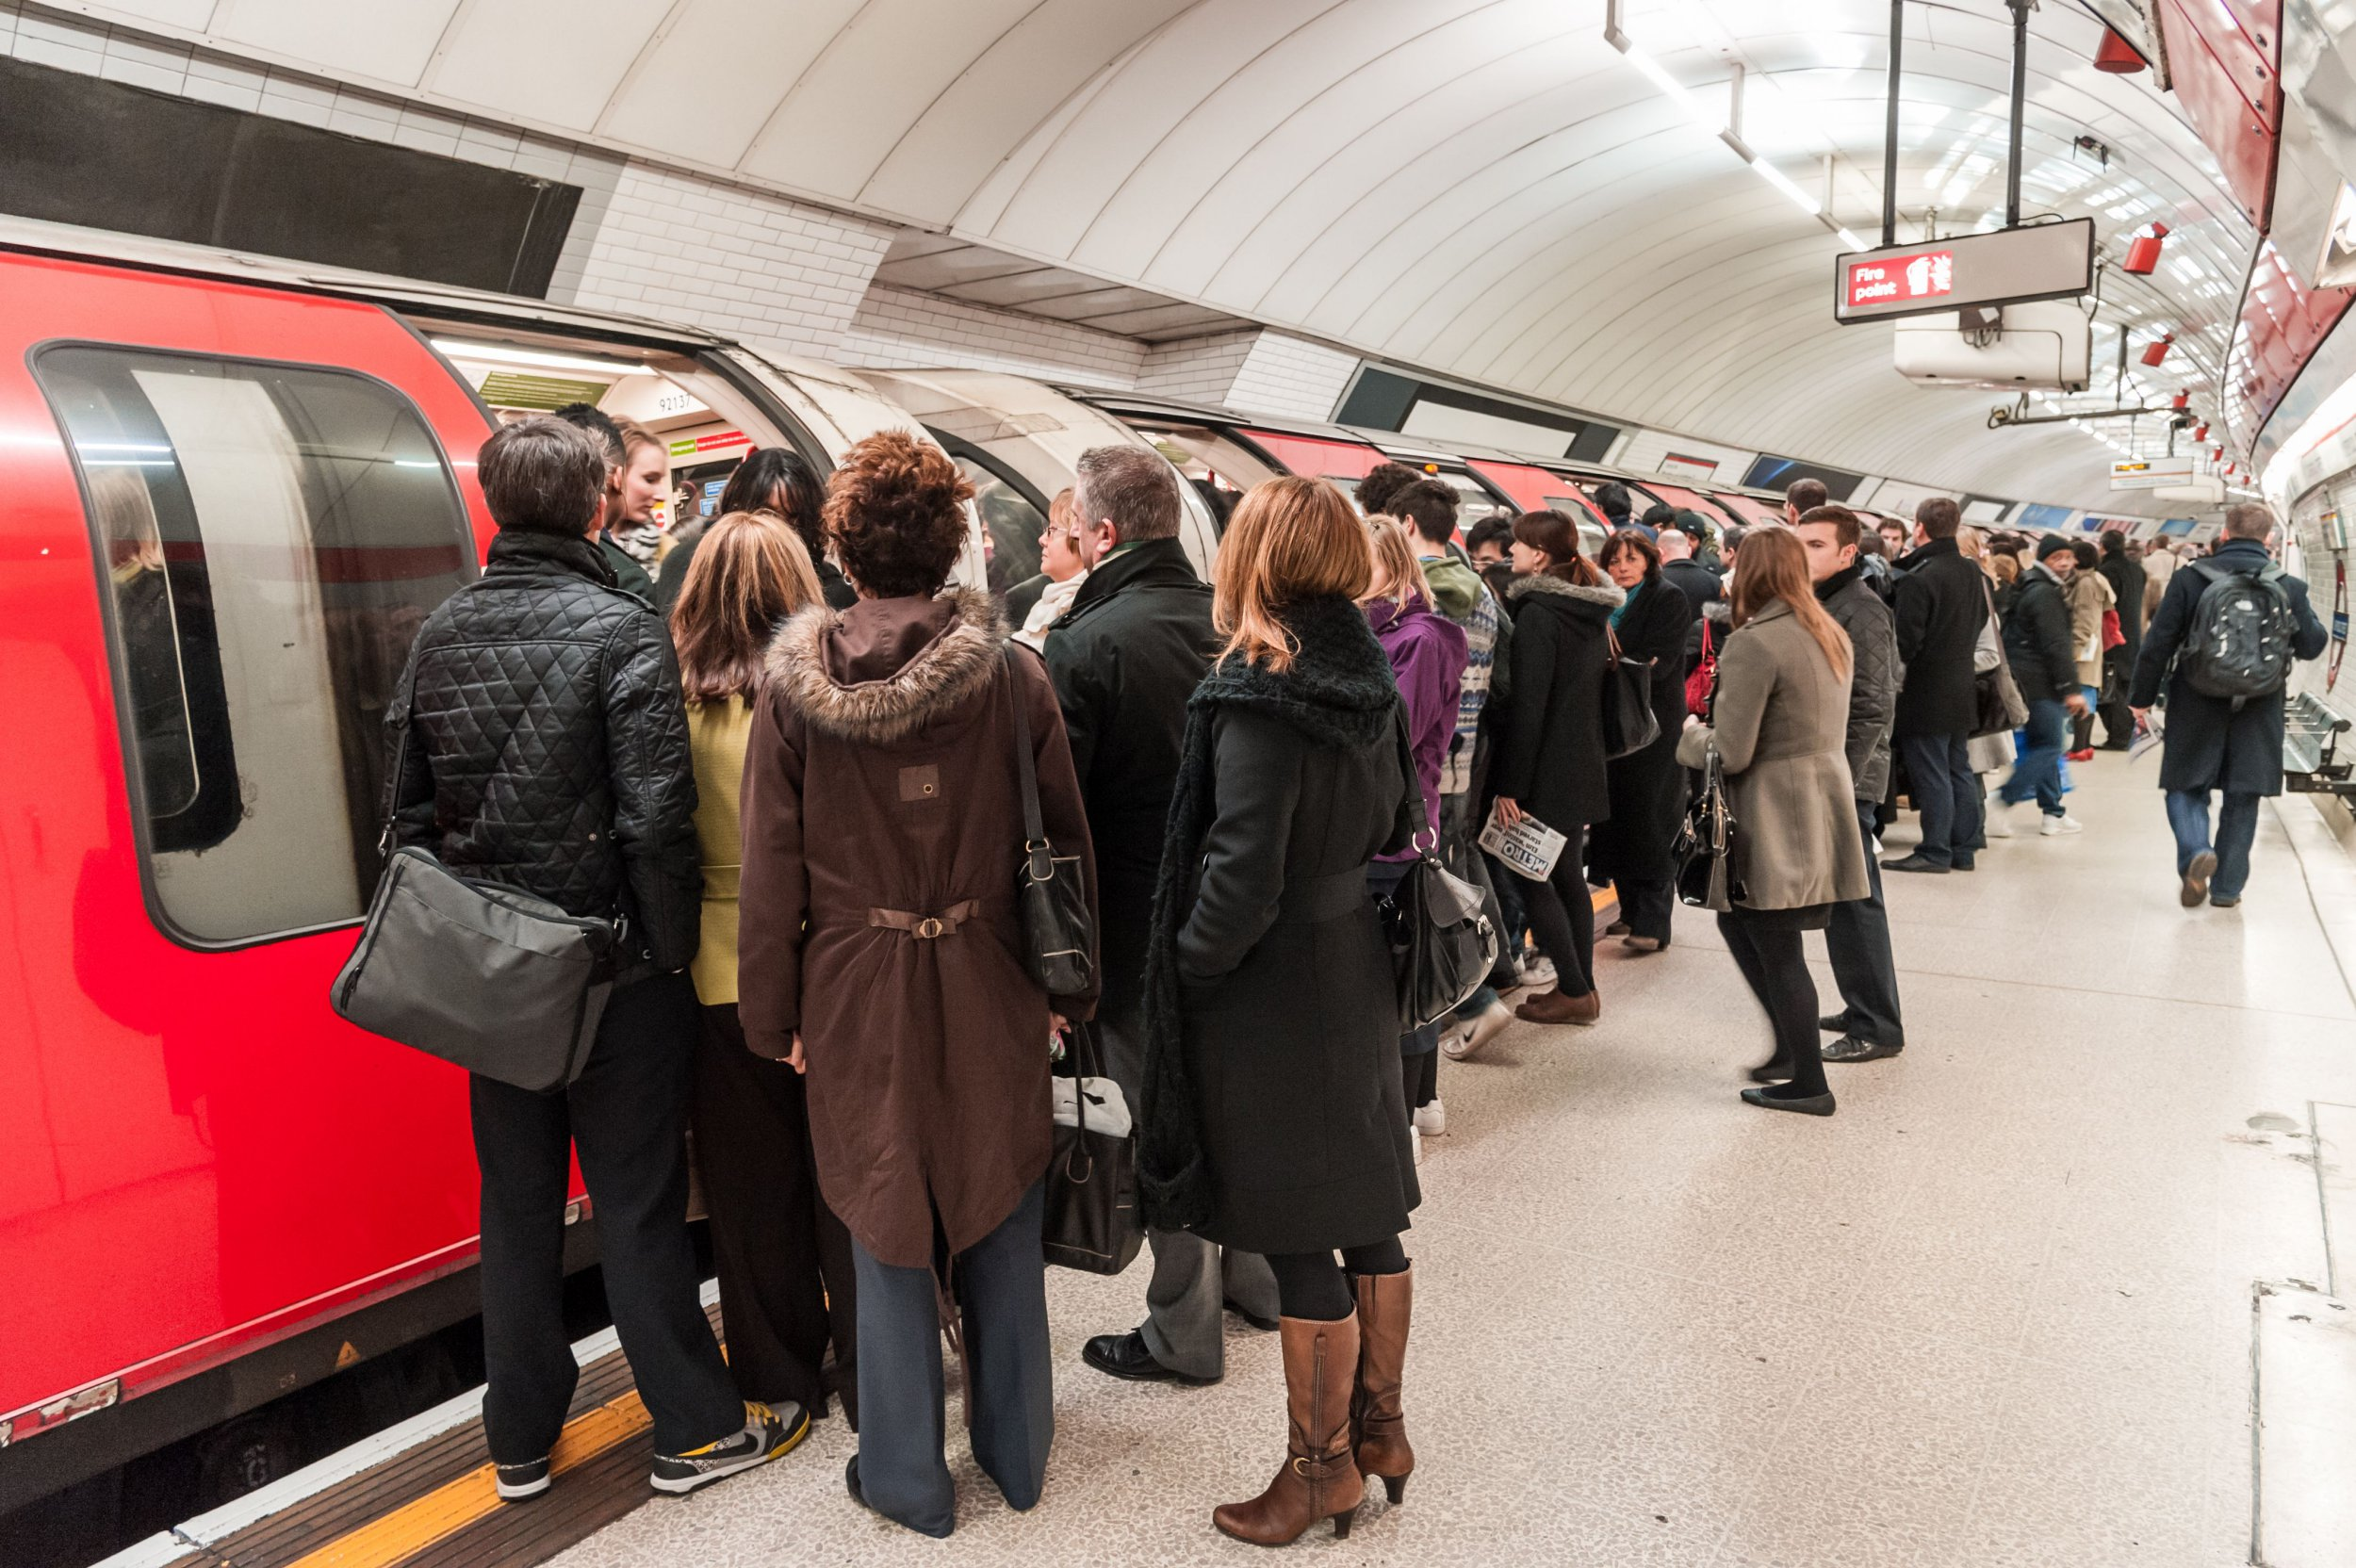 Mandatory Credit: Photo by Alex Segre/REX/Shutterstock (4288729j) Commuters trying to board overcrowded Central Line London Underground train during the morning rush hour, UK London